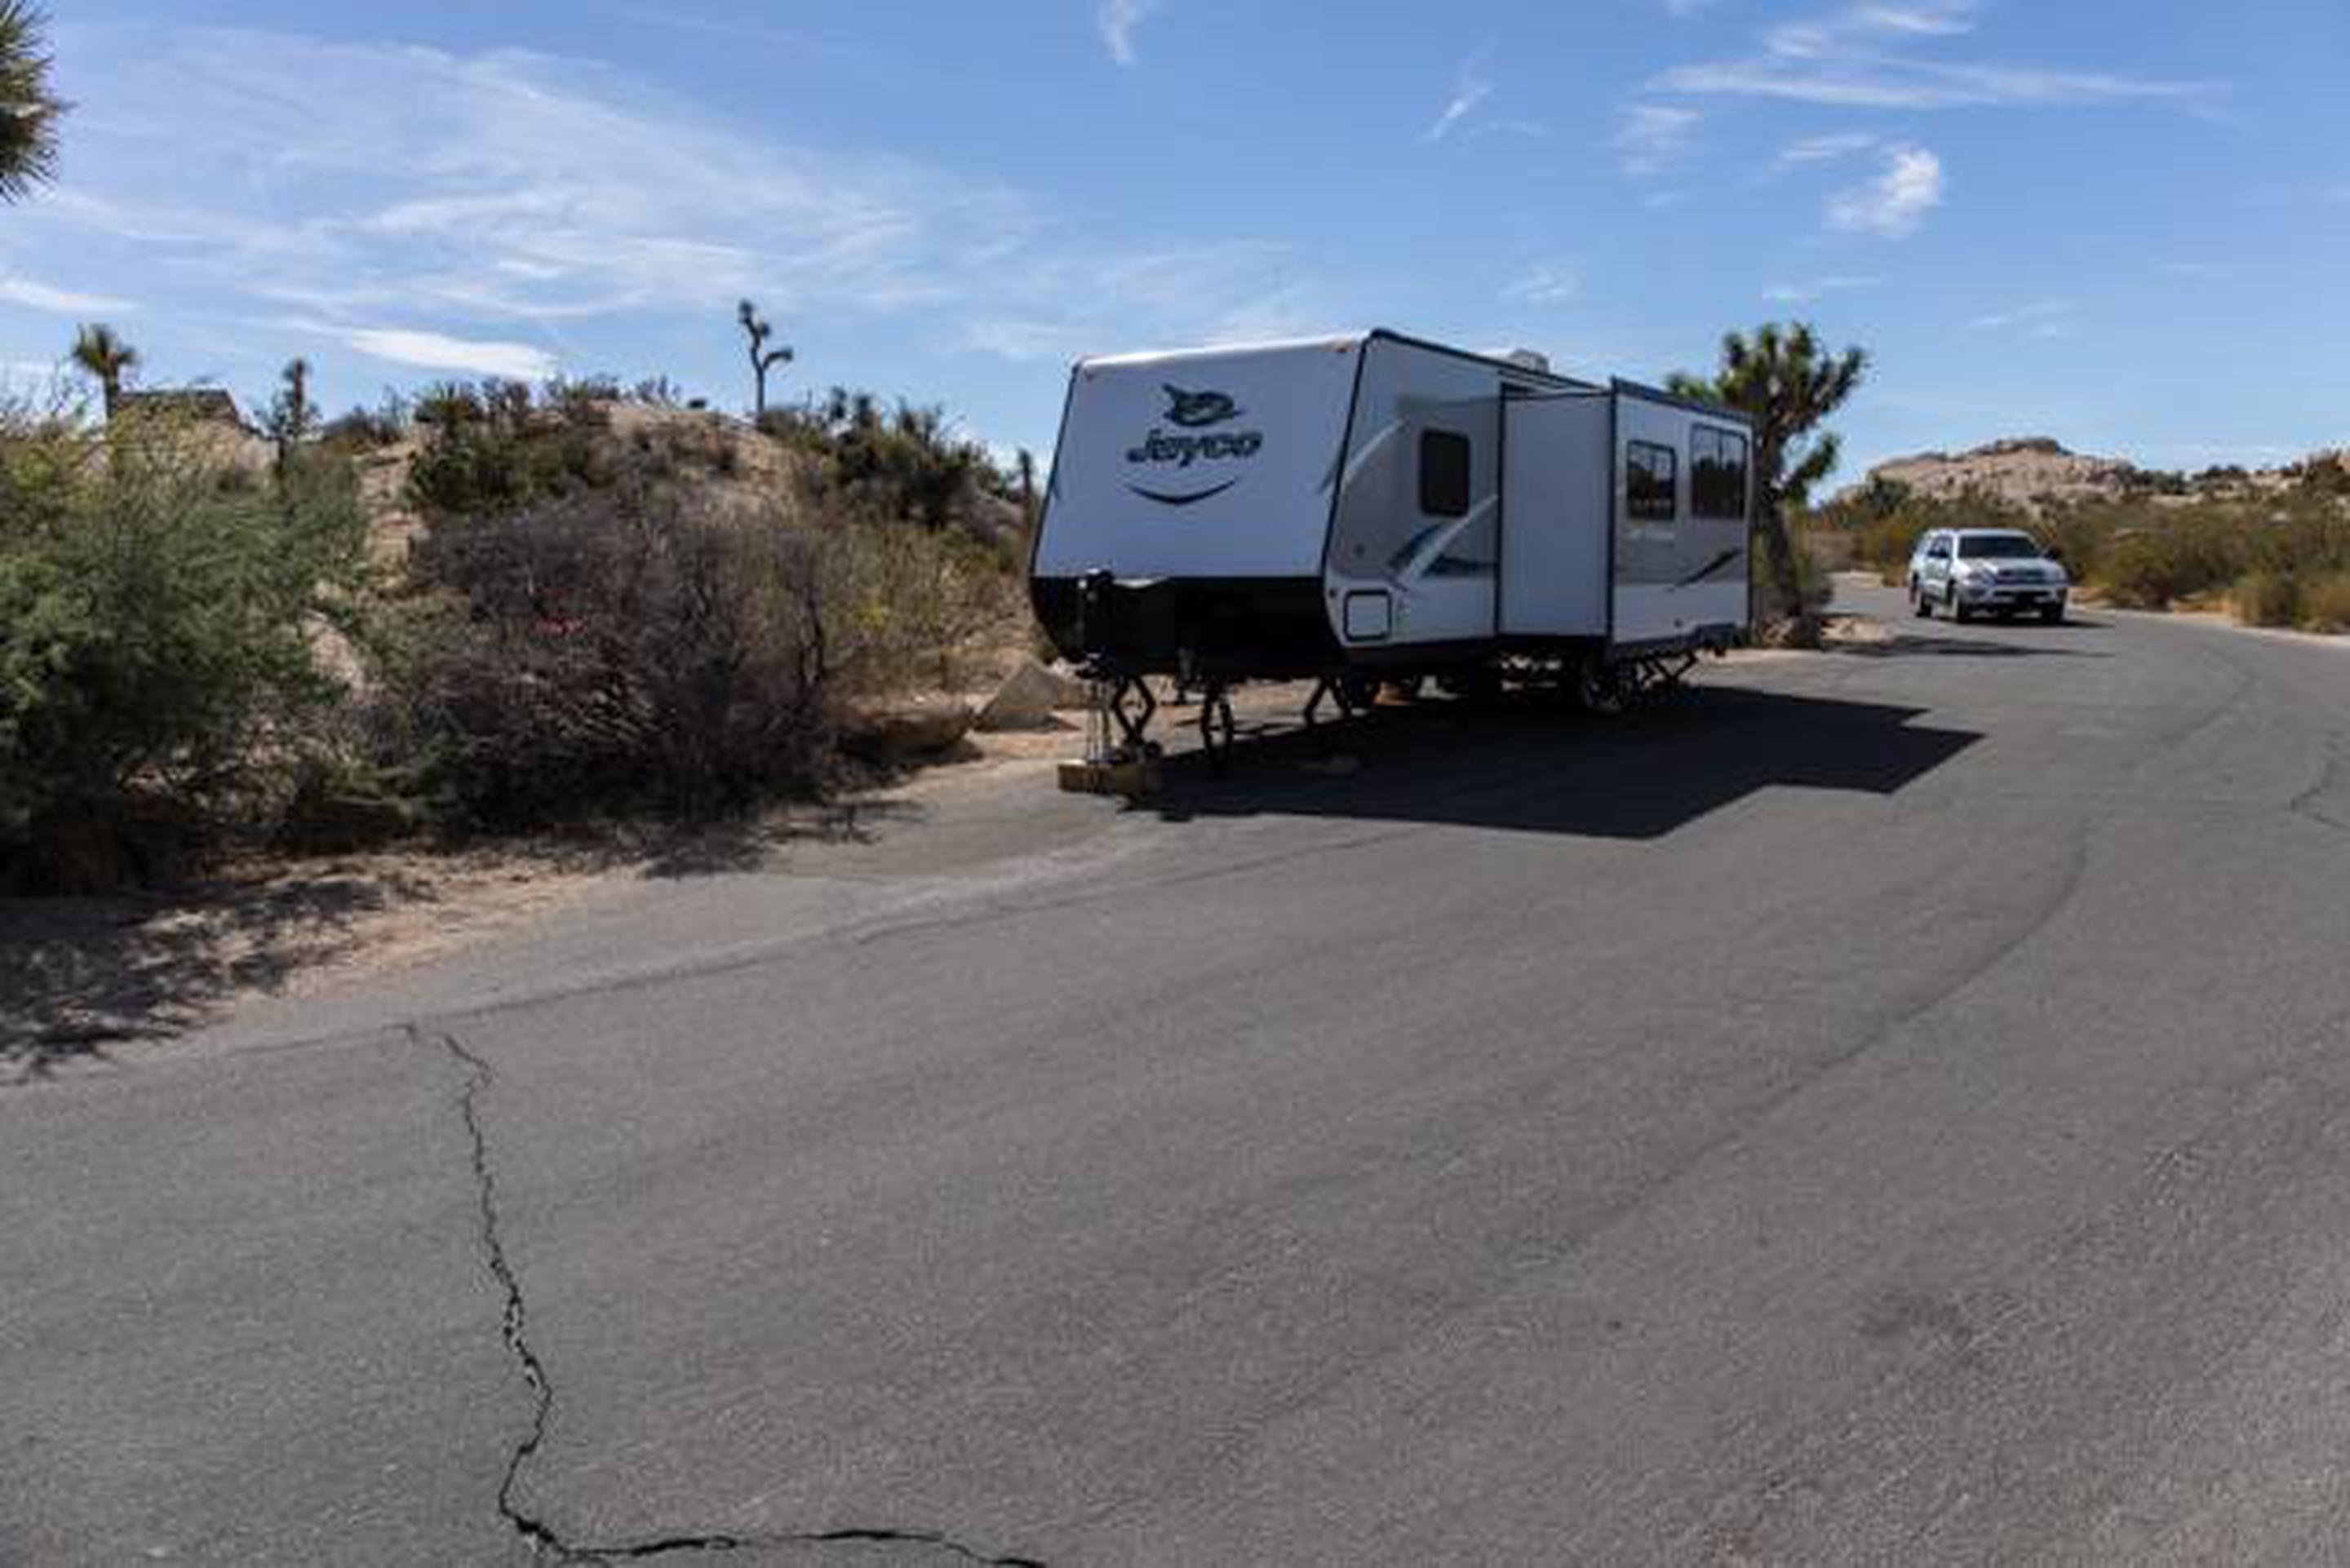 Jumbo Rocks site 94Parking space for campsite